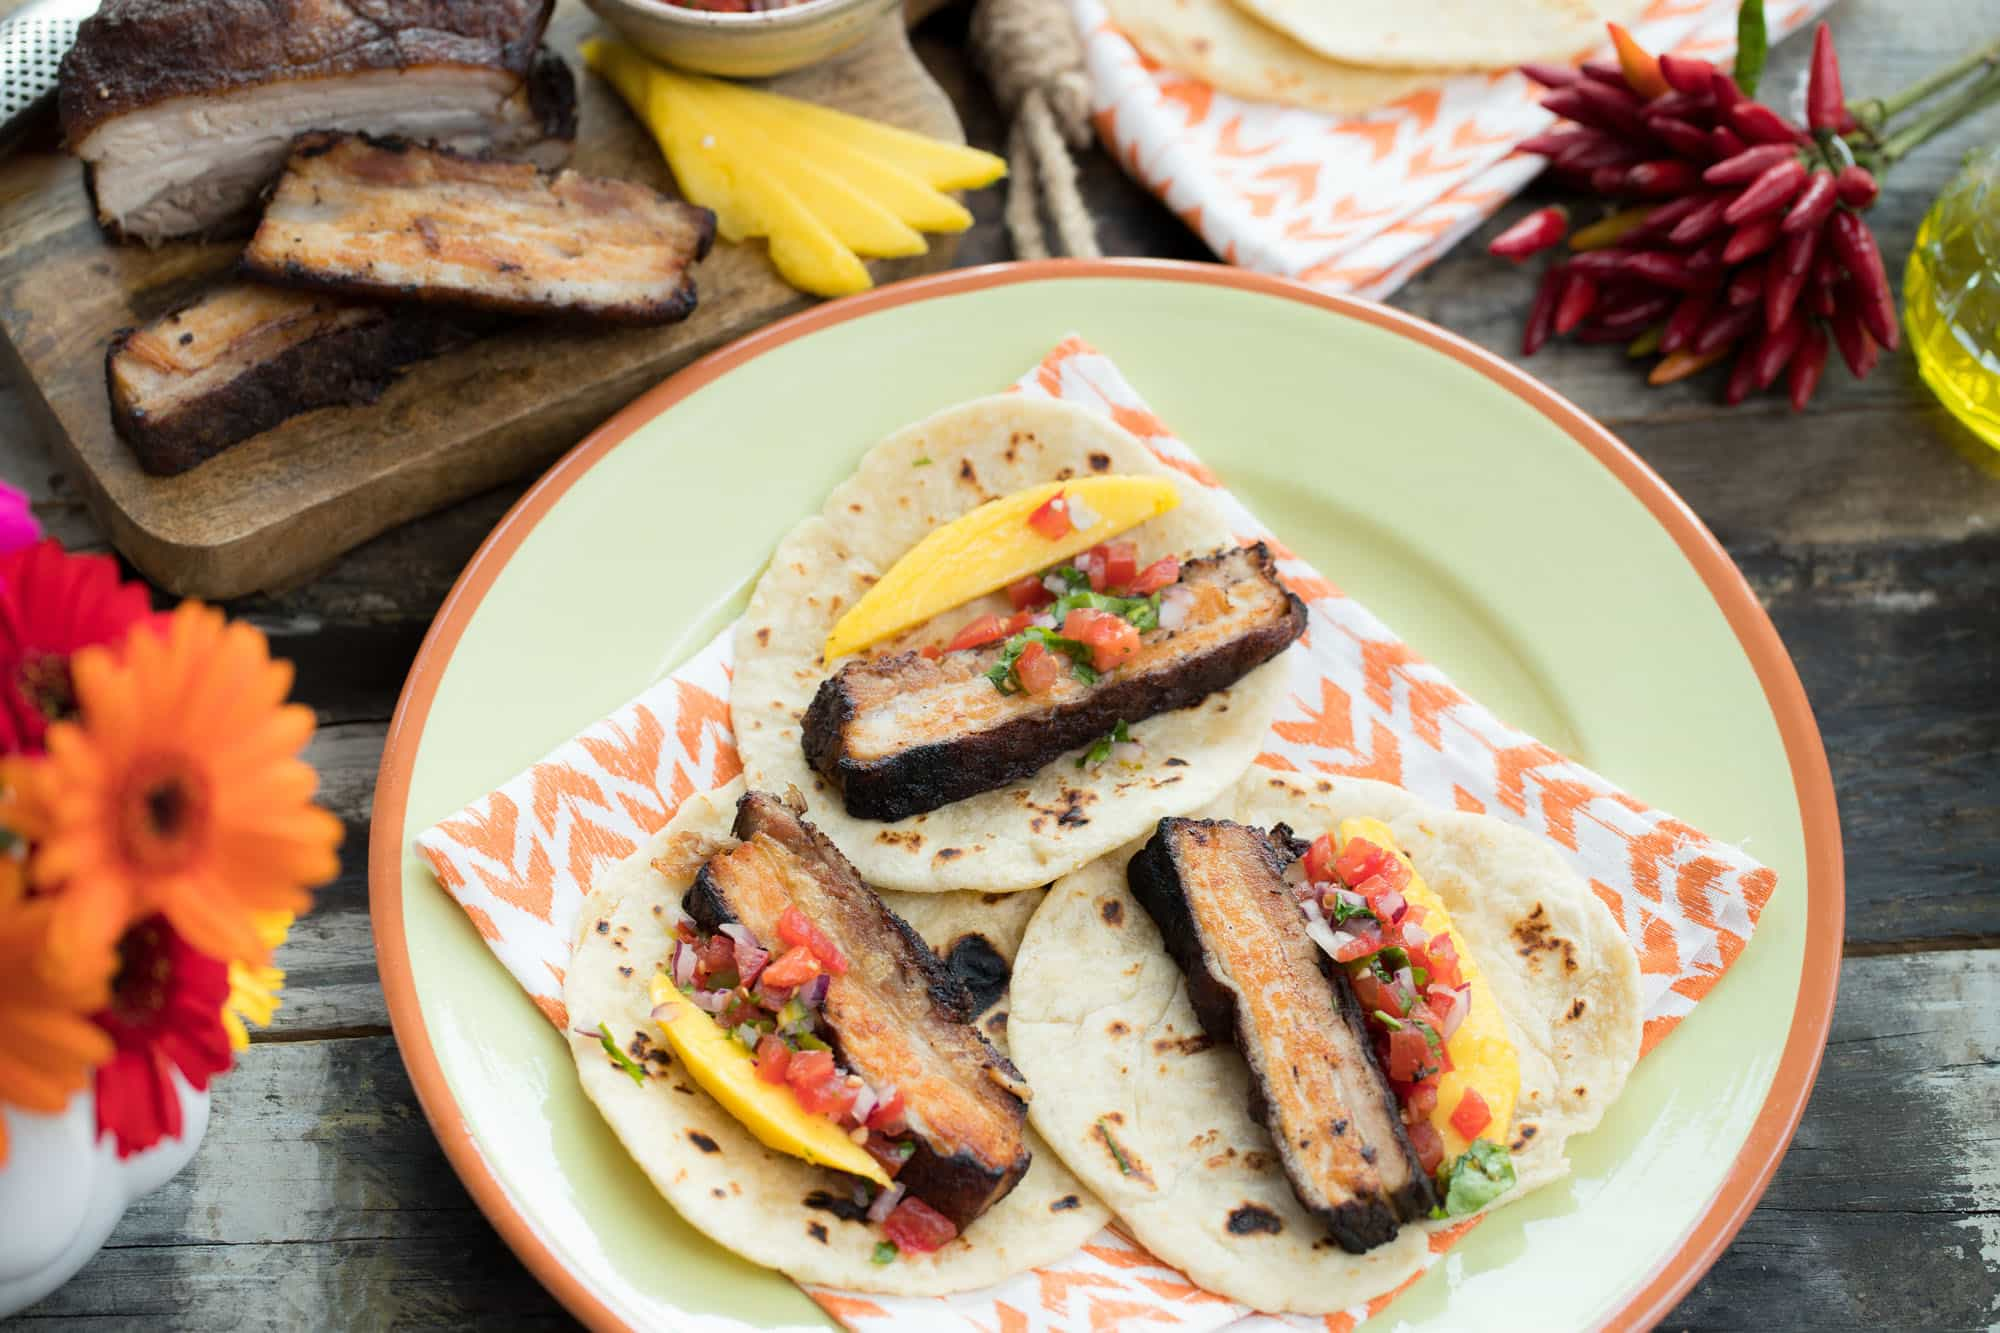 taco meats pork - home made tortilla met mango en pico de gallo 13